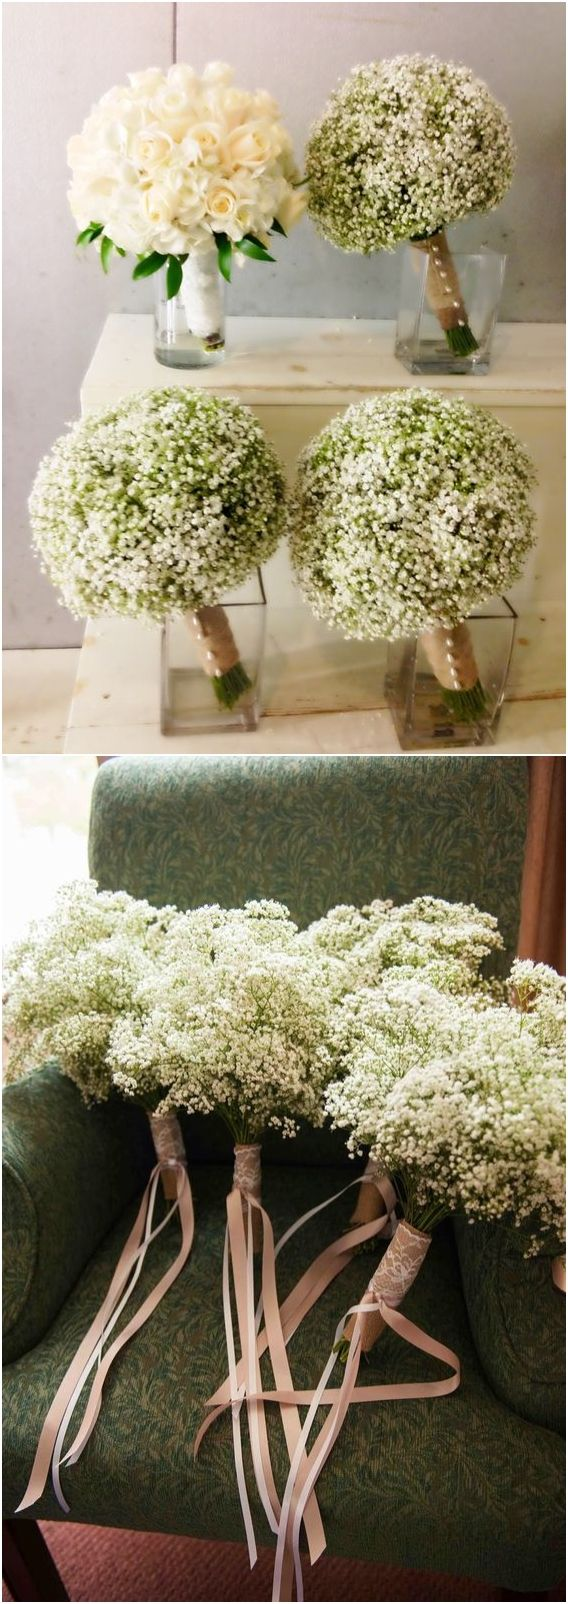 Rustic baby's breath wedding decor ideas #wedding #weddingideas #weddinginspiration